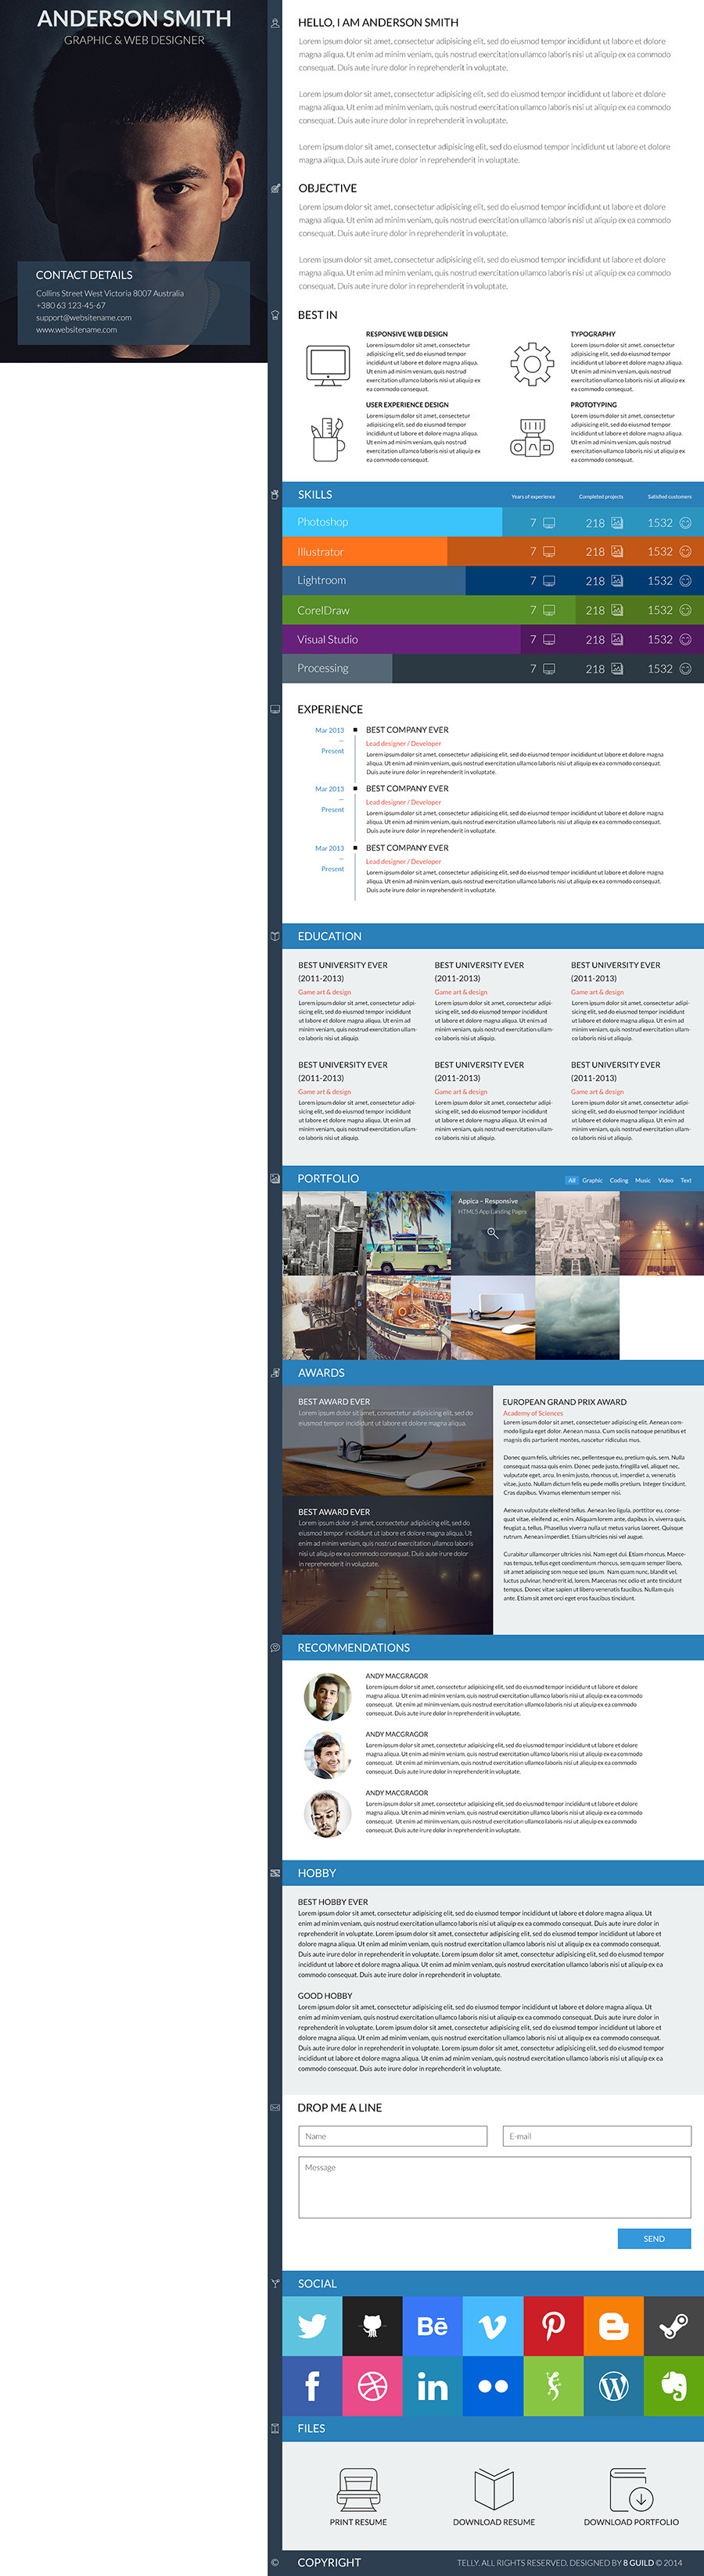 telly is professional html5 resume and portfolio